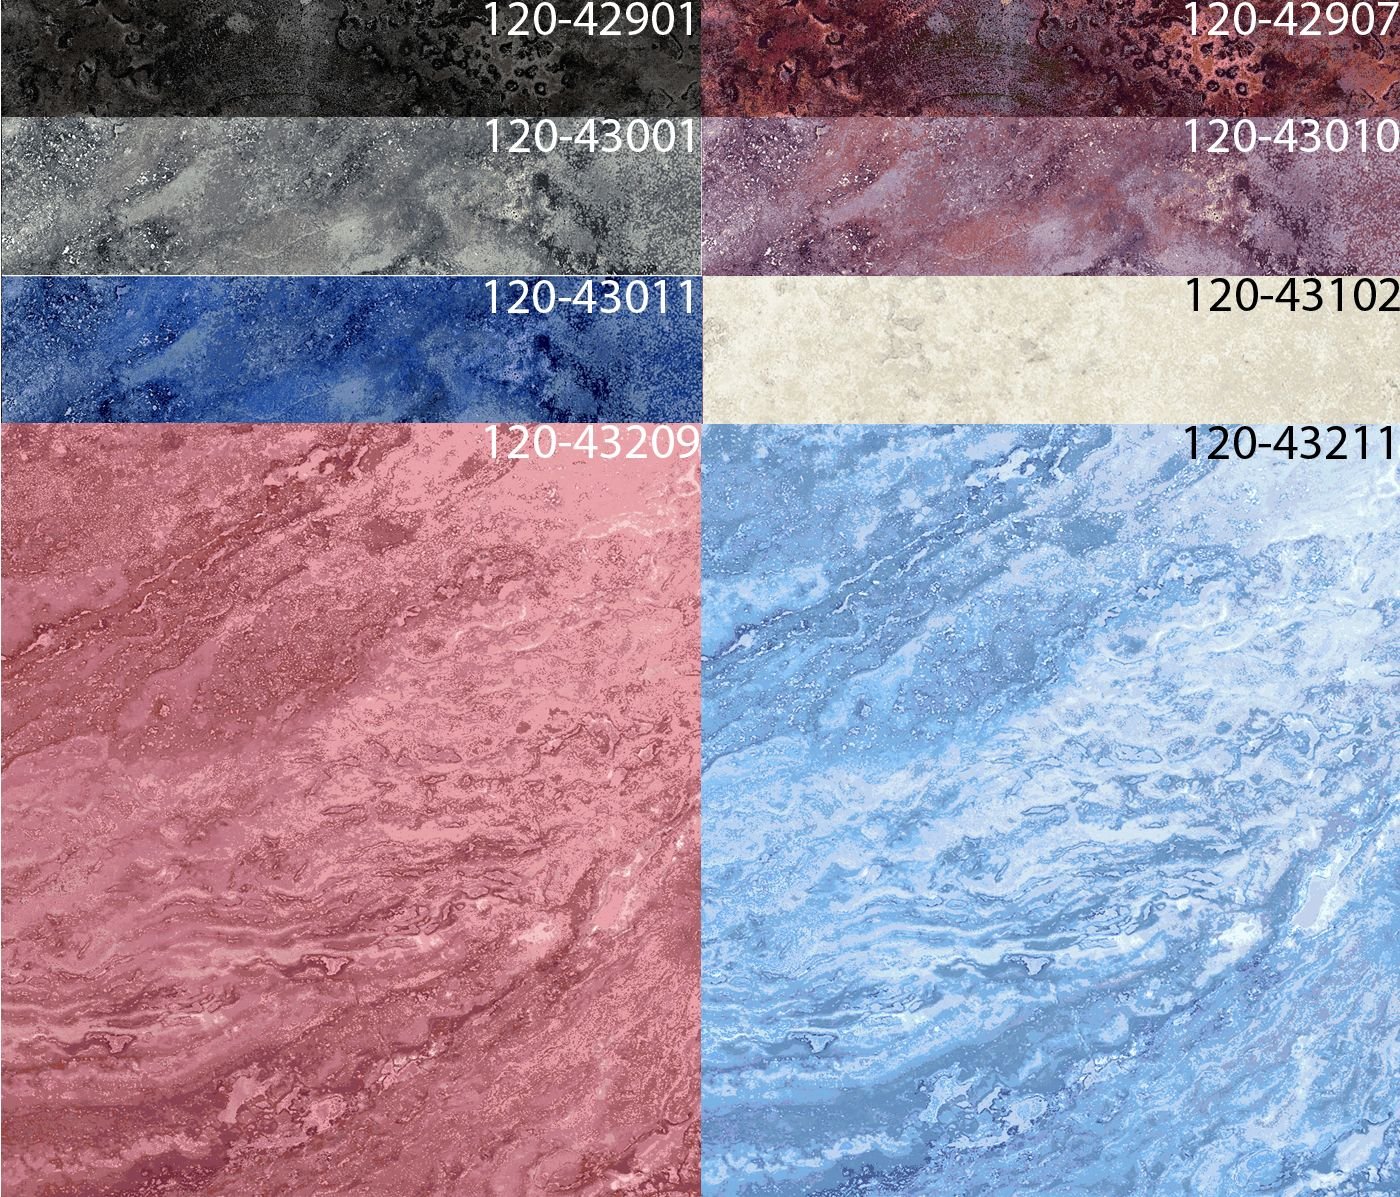 Marblehead Fabric by Paintbrush Studio QW-MARBLEHEAD- $2.59 per fat quarter or purchase by the yard or 1/2 yard